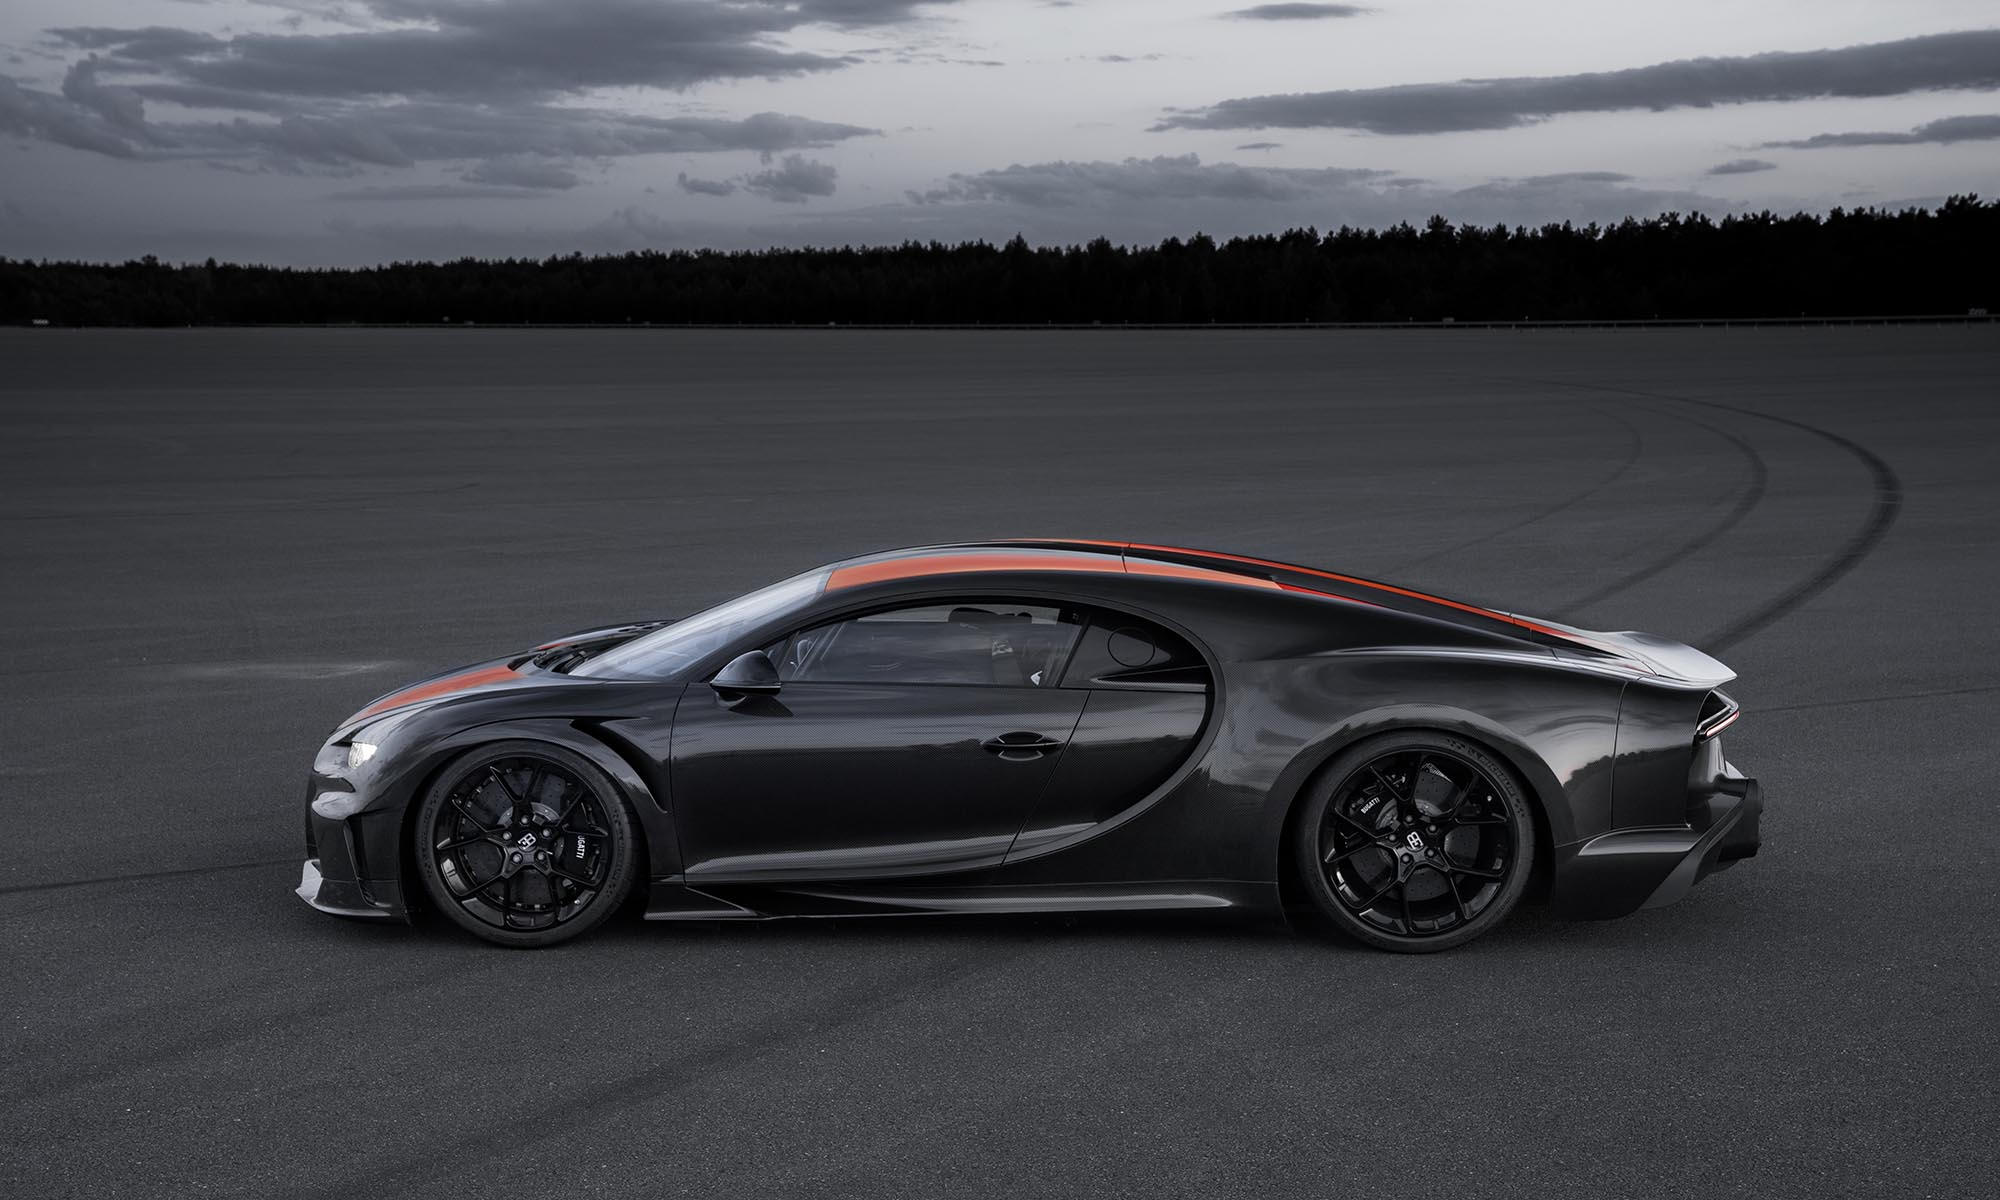 Bugatti, Chiron, Top Gear, 304.77mph, New Speed Record, HyperCar, top speed run, sportcar, luxury car, luxury, top speed, Ehra-Lessien, speed king, Andy Wallace, Germany's Technical Inspection Association, Chiron Sport, Dallara, Michelin, W16 machine, quad-turbo 8.0-liter engine, 1,578 horsepower, seven-speed dual-clutch automatic transmission, Chiron Super Sport,